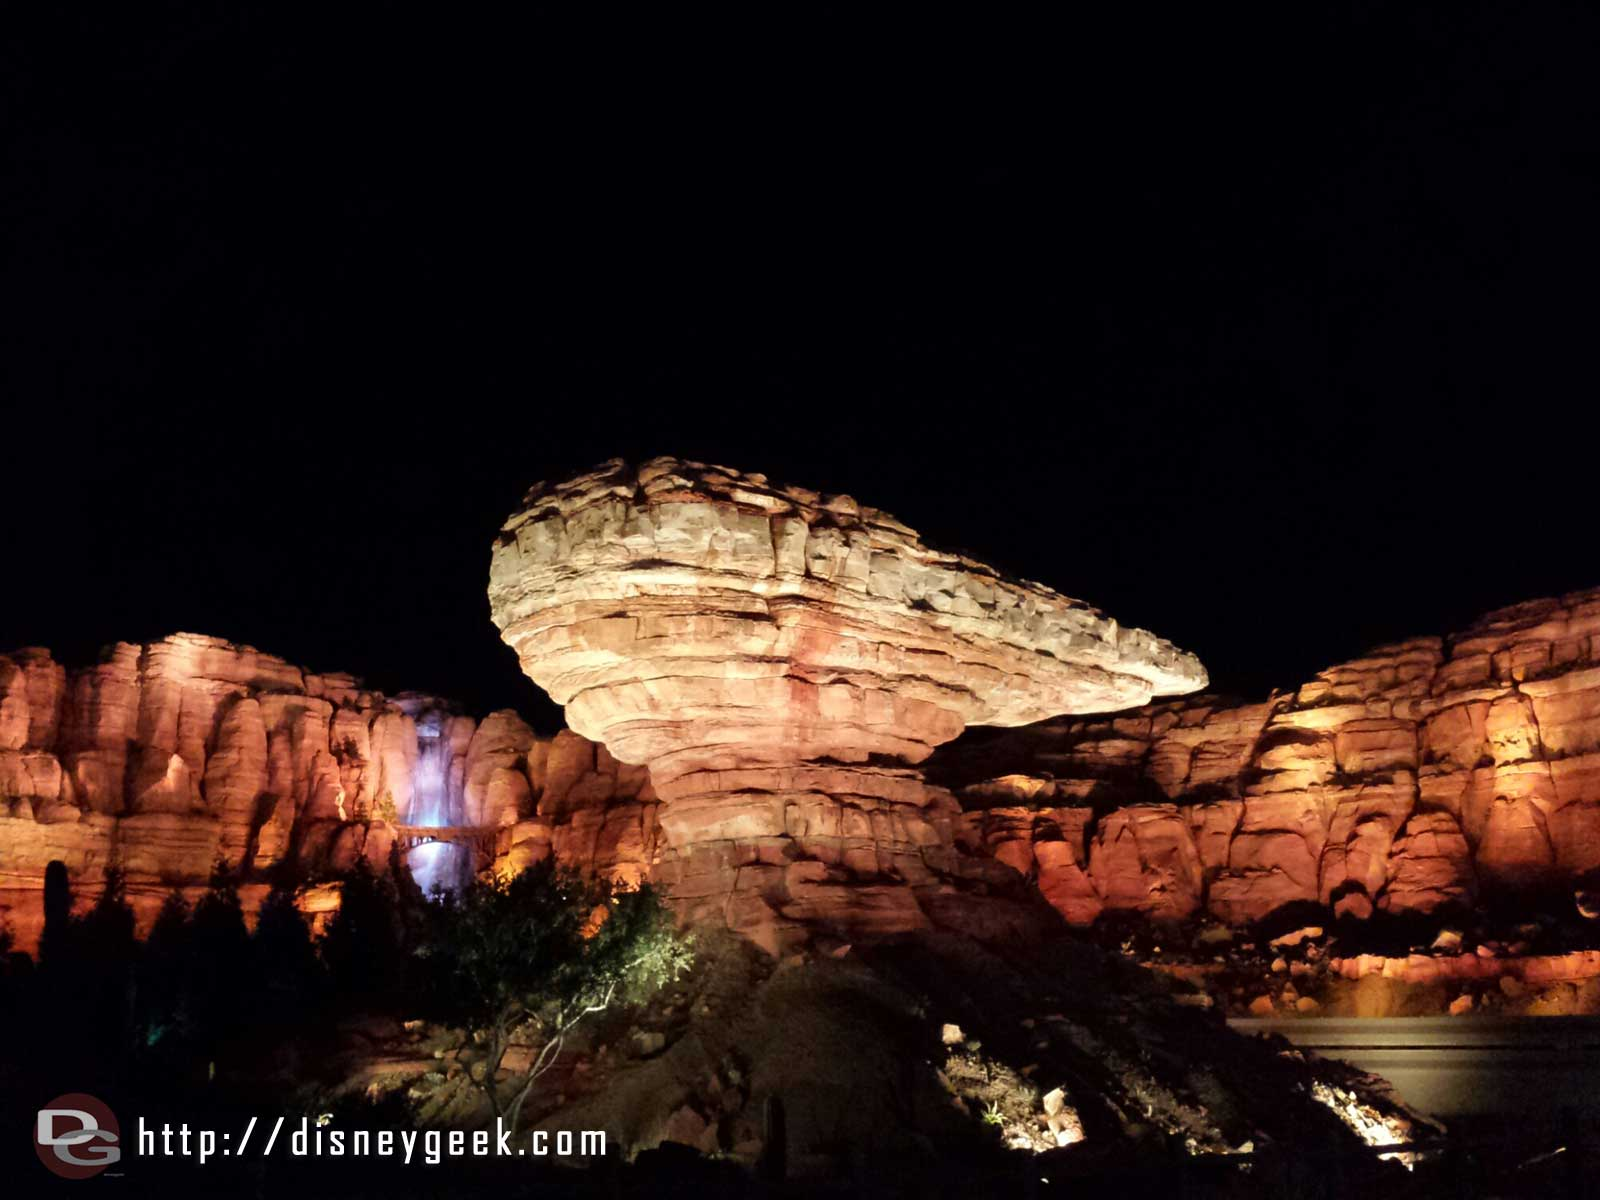 Ornament Valley #CarsLand Racers posted at 65 min this even or about half the Olaf wait #Frozen